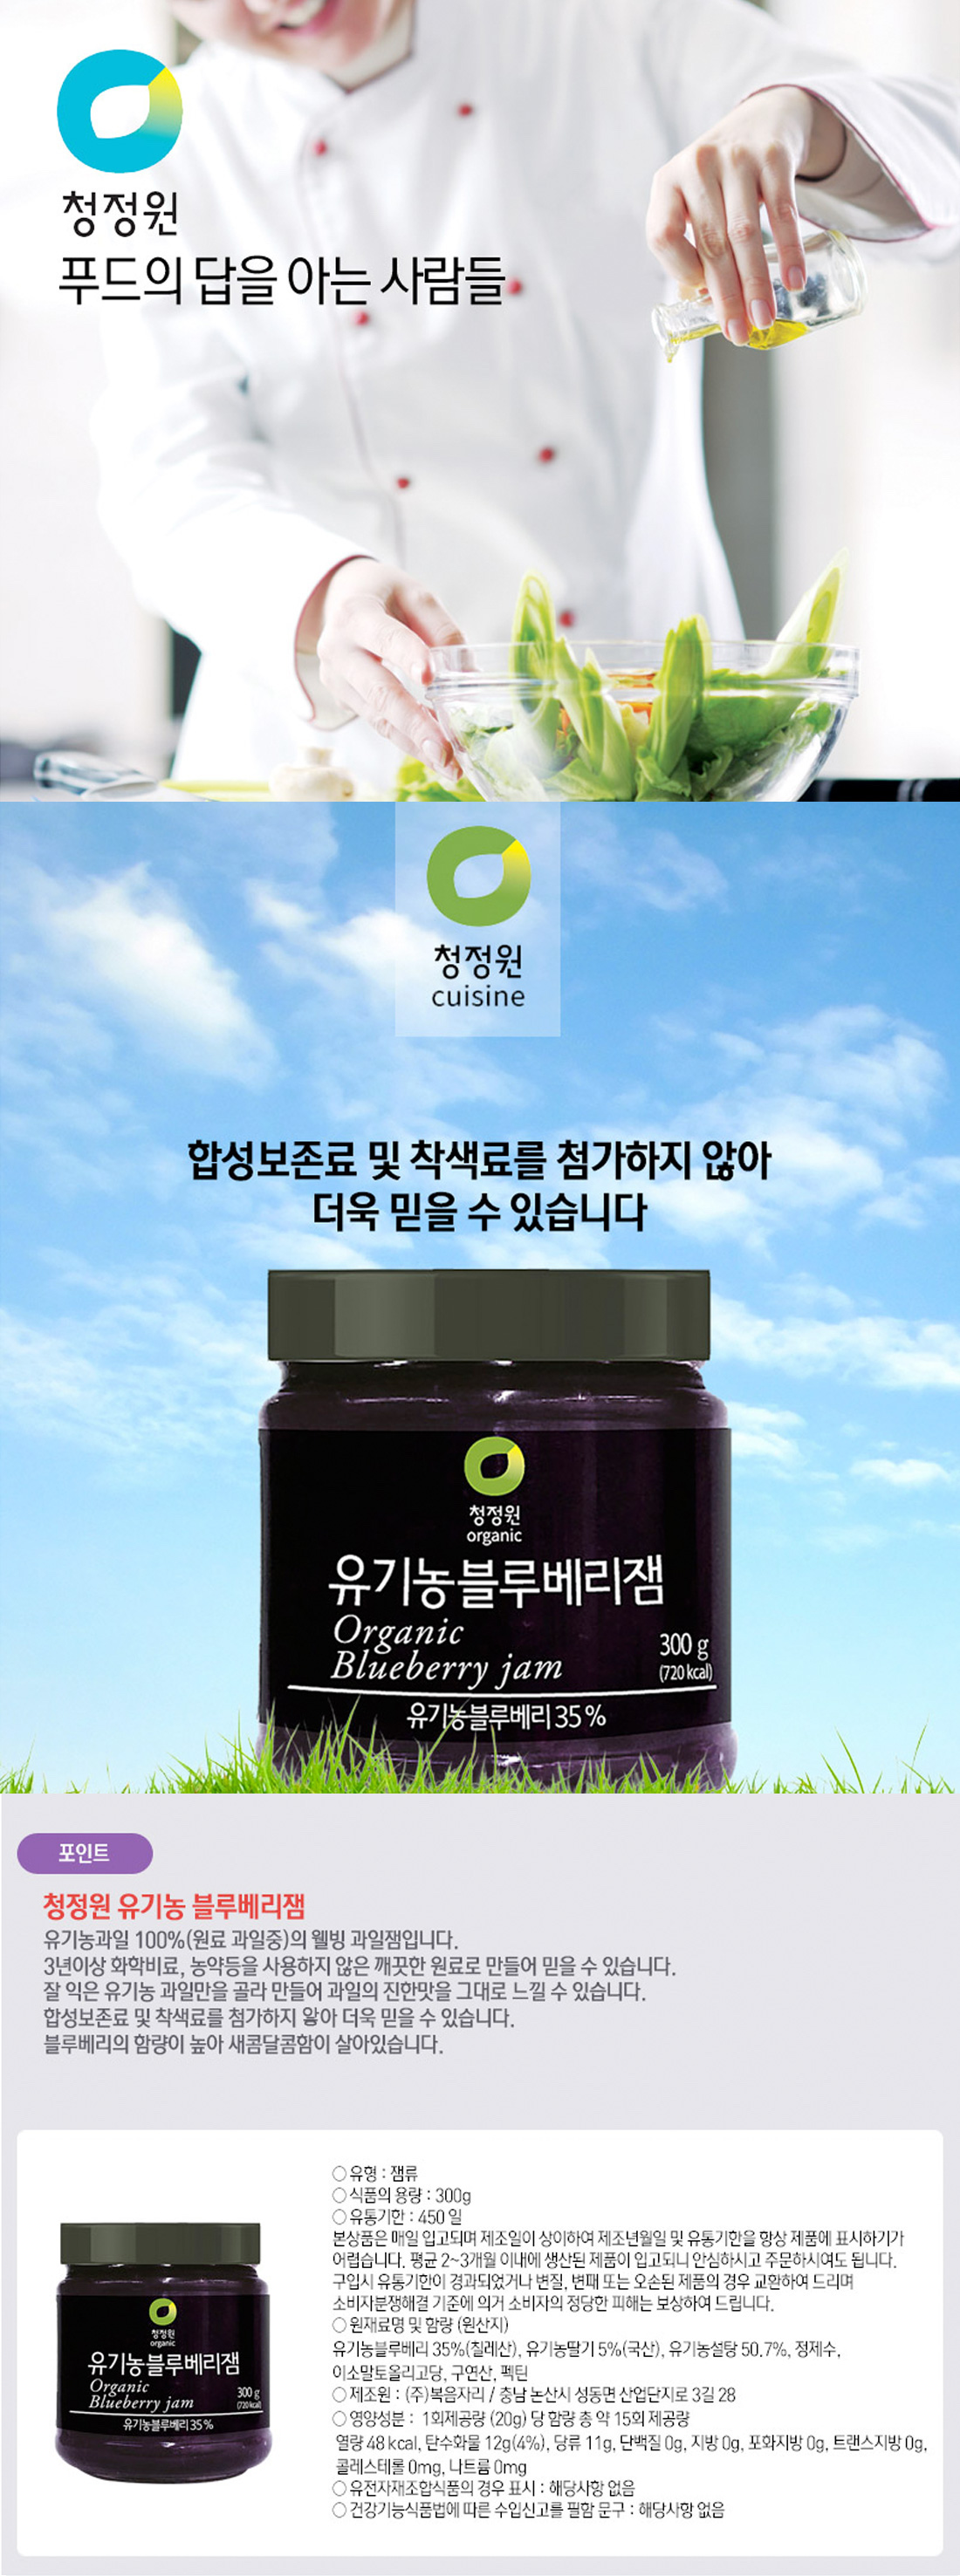 [ chungjungone ] ORGANIC BLUEBERRY JAM 300g X 3pcs